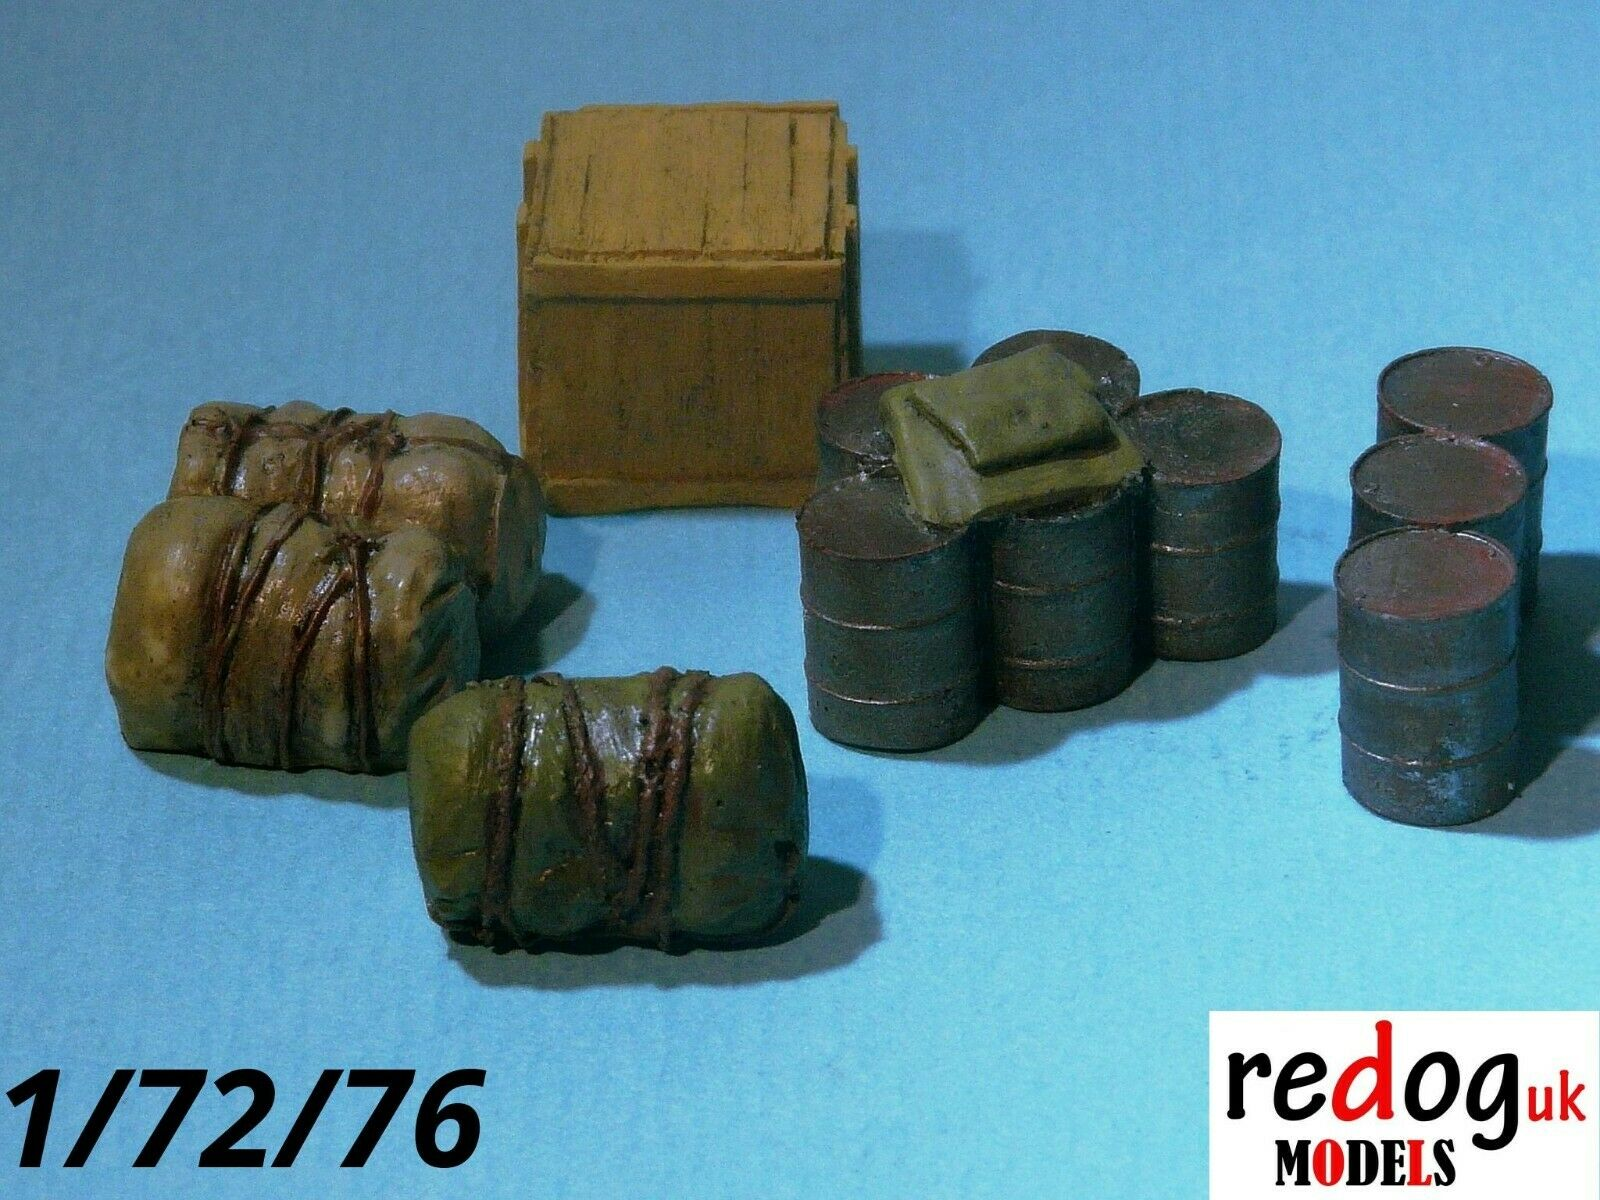 1/72 Vehicle Cargo Kit Military Scale Modelling Stowage Diorama Accessorises 3 - redoguk